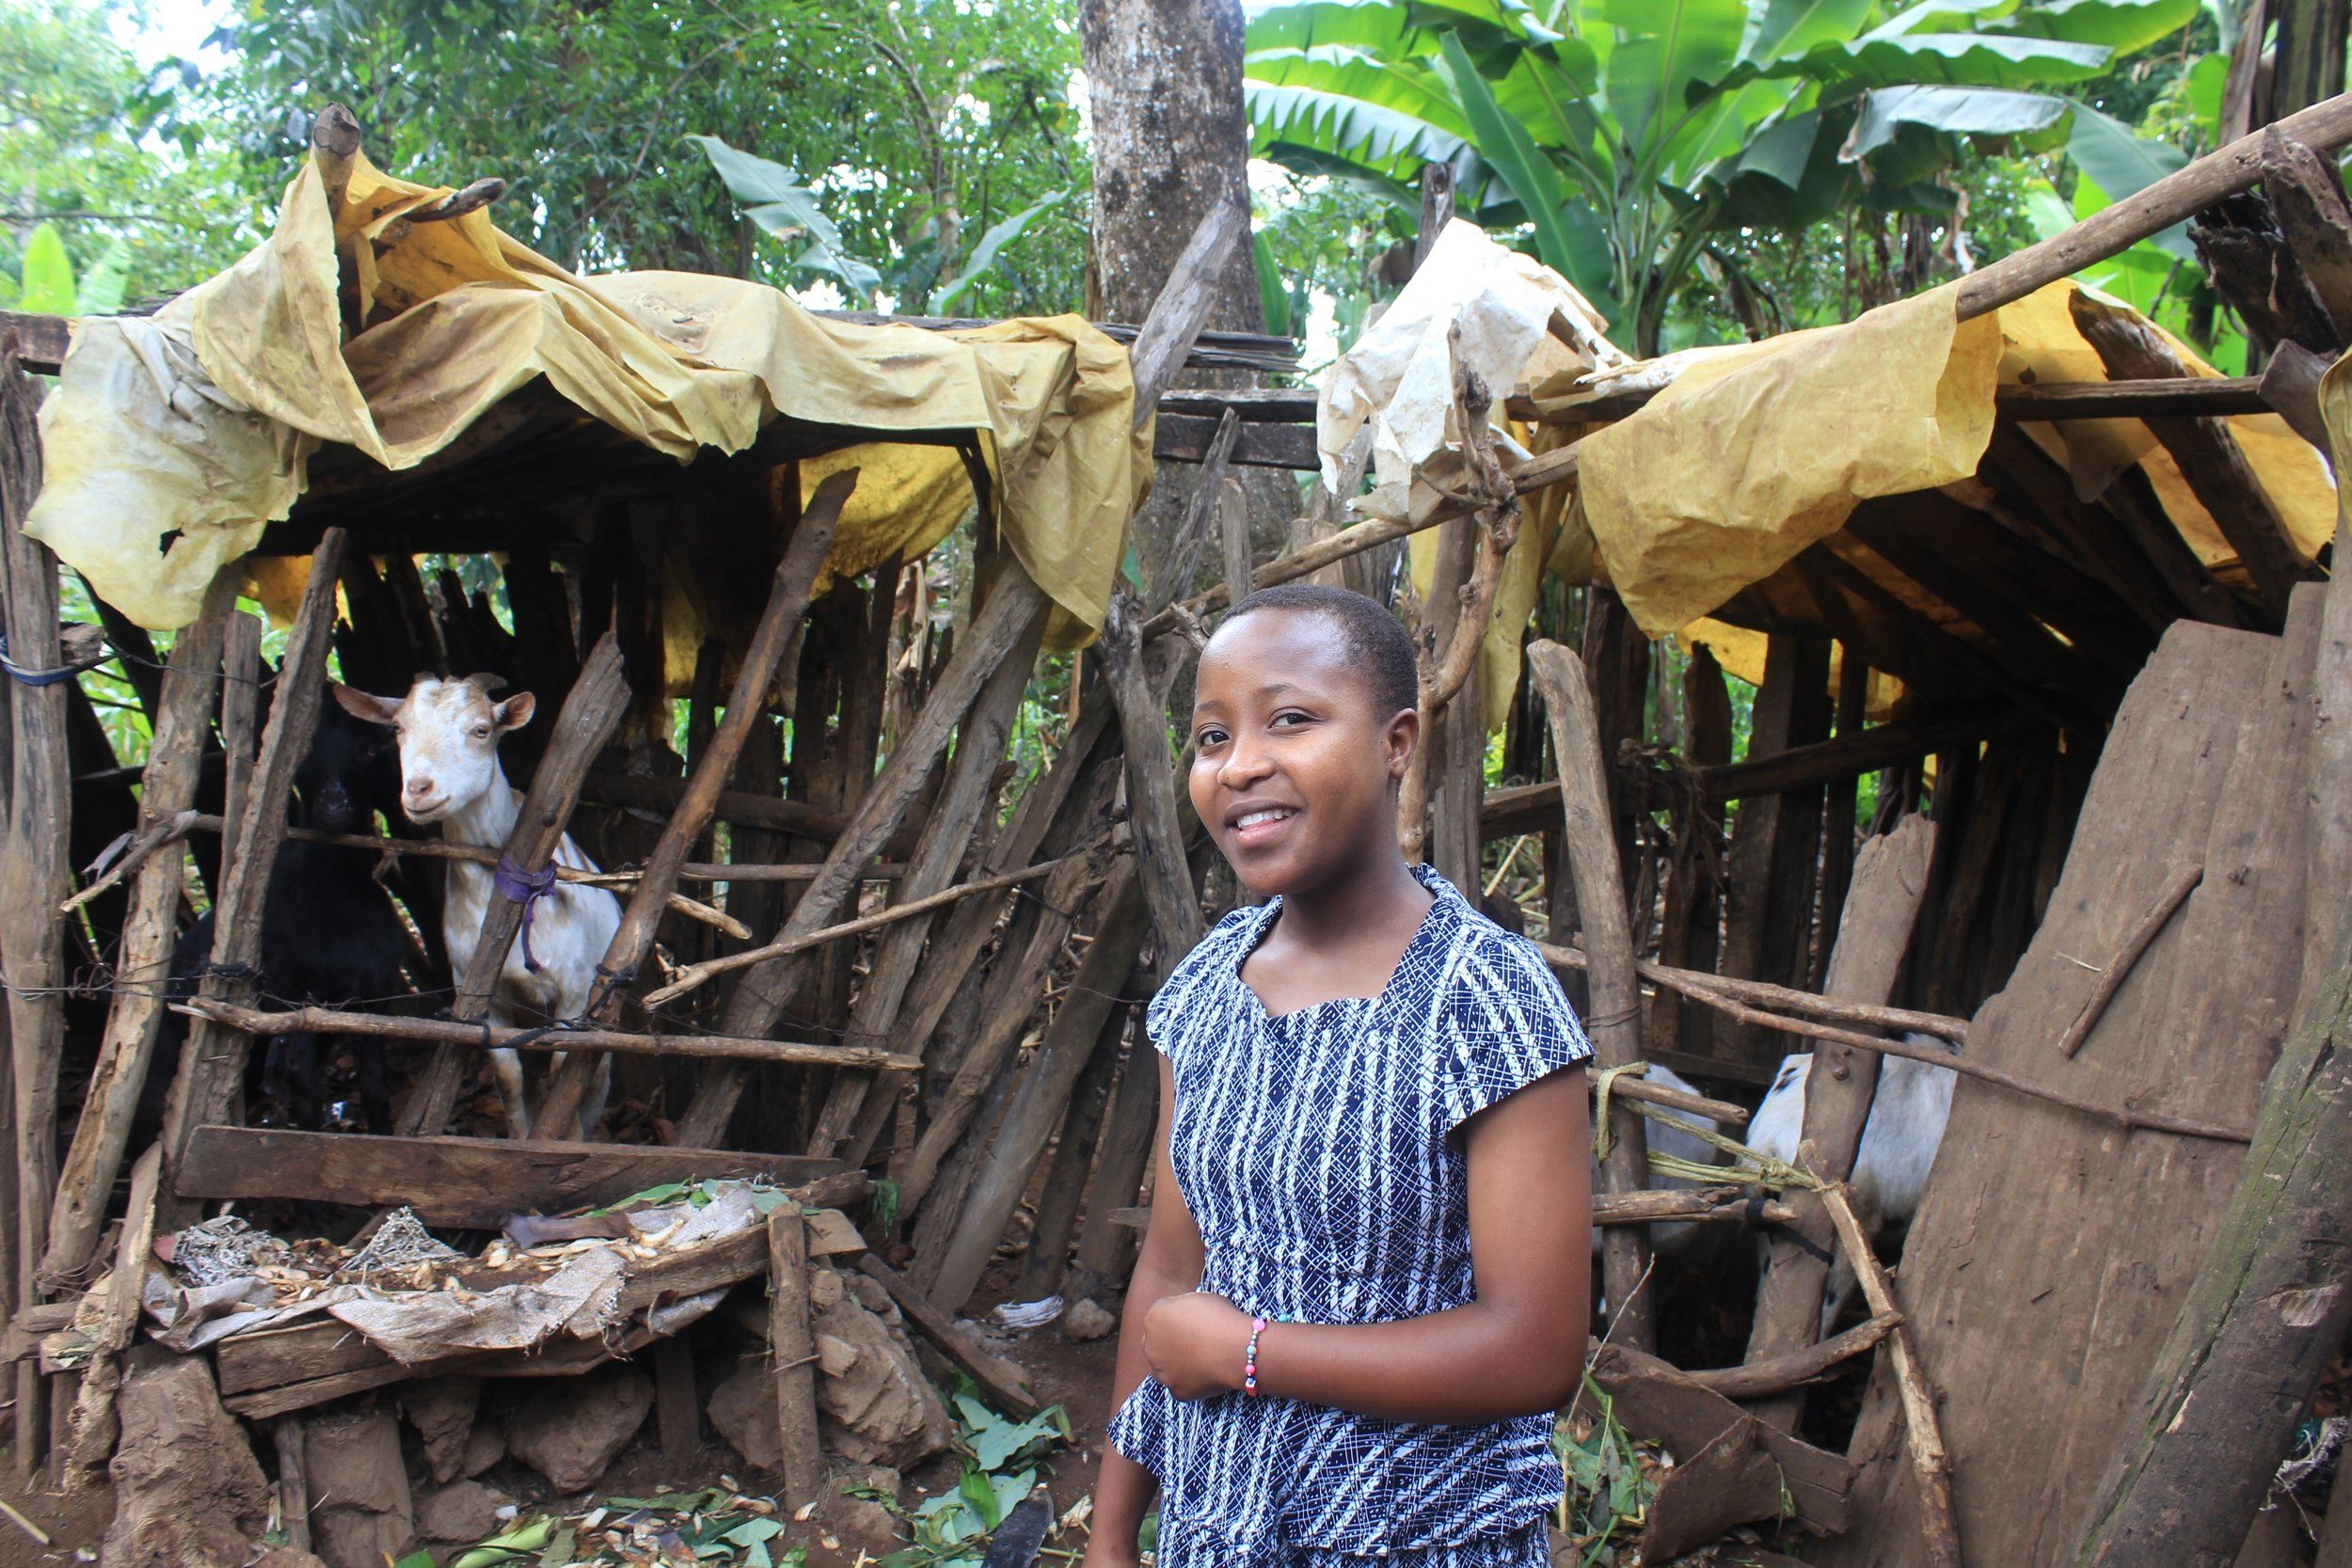 Melanie in her village in the foothills of Mt. Kilimanjaro. (Courtesy of Nano Chatfield / The Girls Foundation of Tanzania)